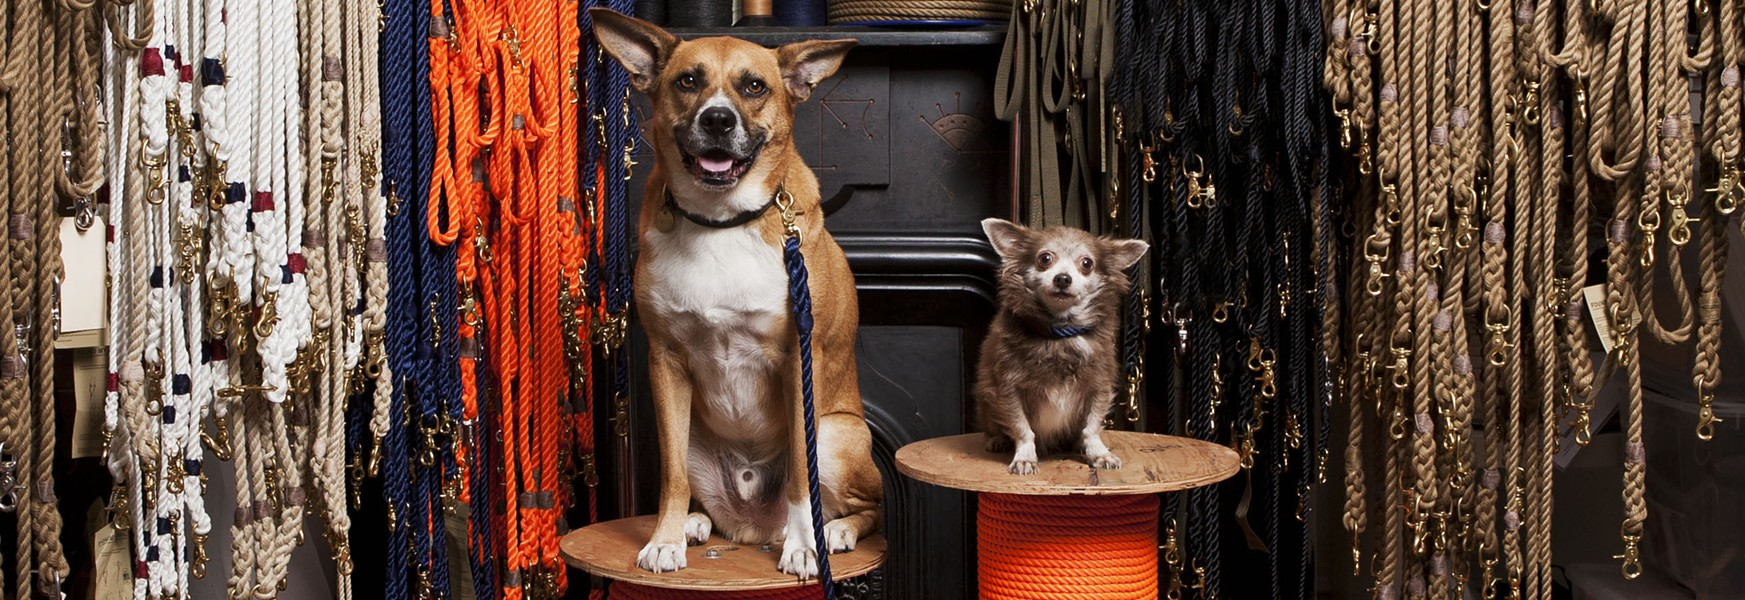 Two rescue dogs with their Found My Animal collars and leashes. - PHOTO BY TRE CASETTA, COURTESY OF FOUND MY ANIMAL